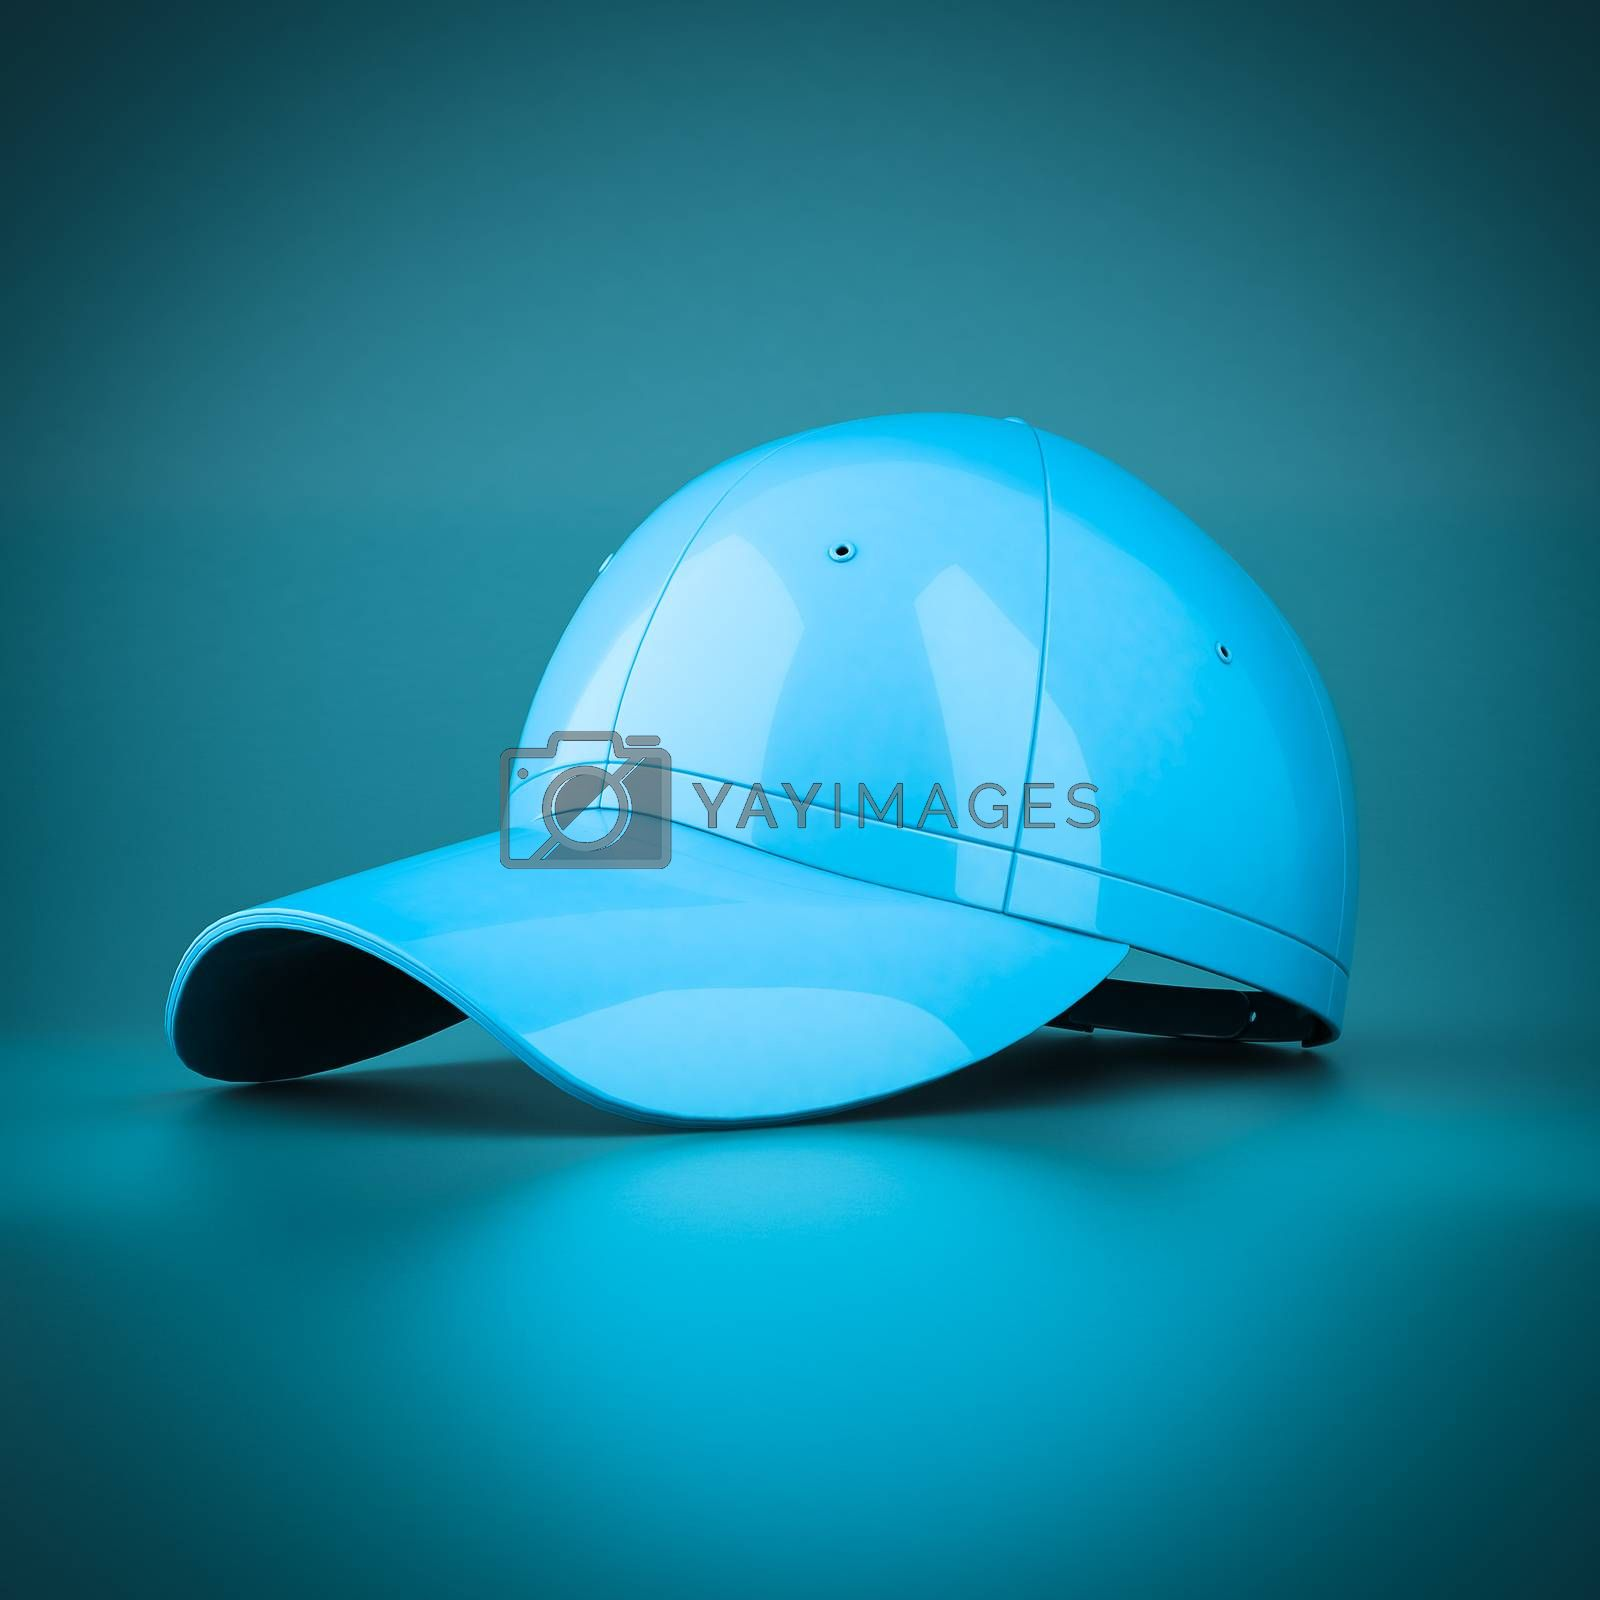 3D rendering baseball cap on blue background